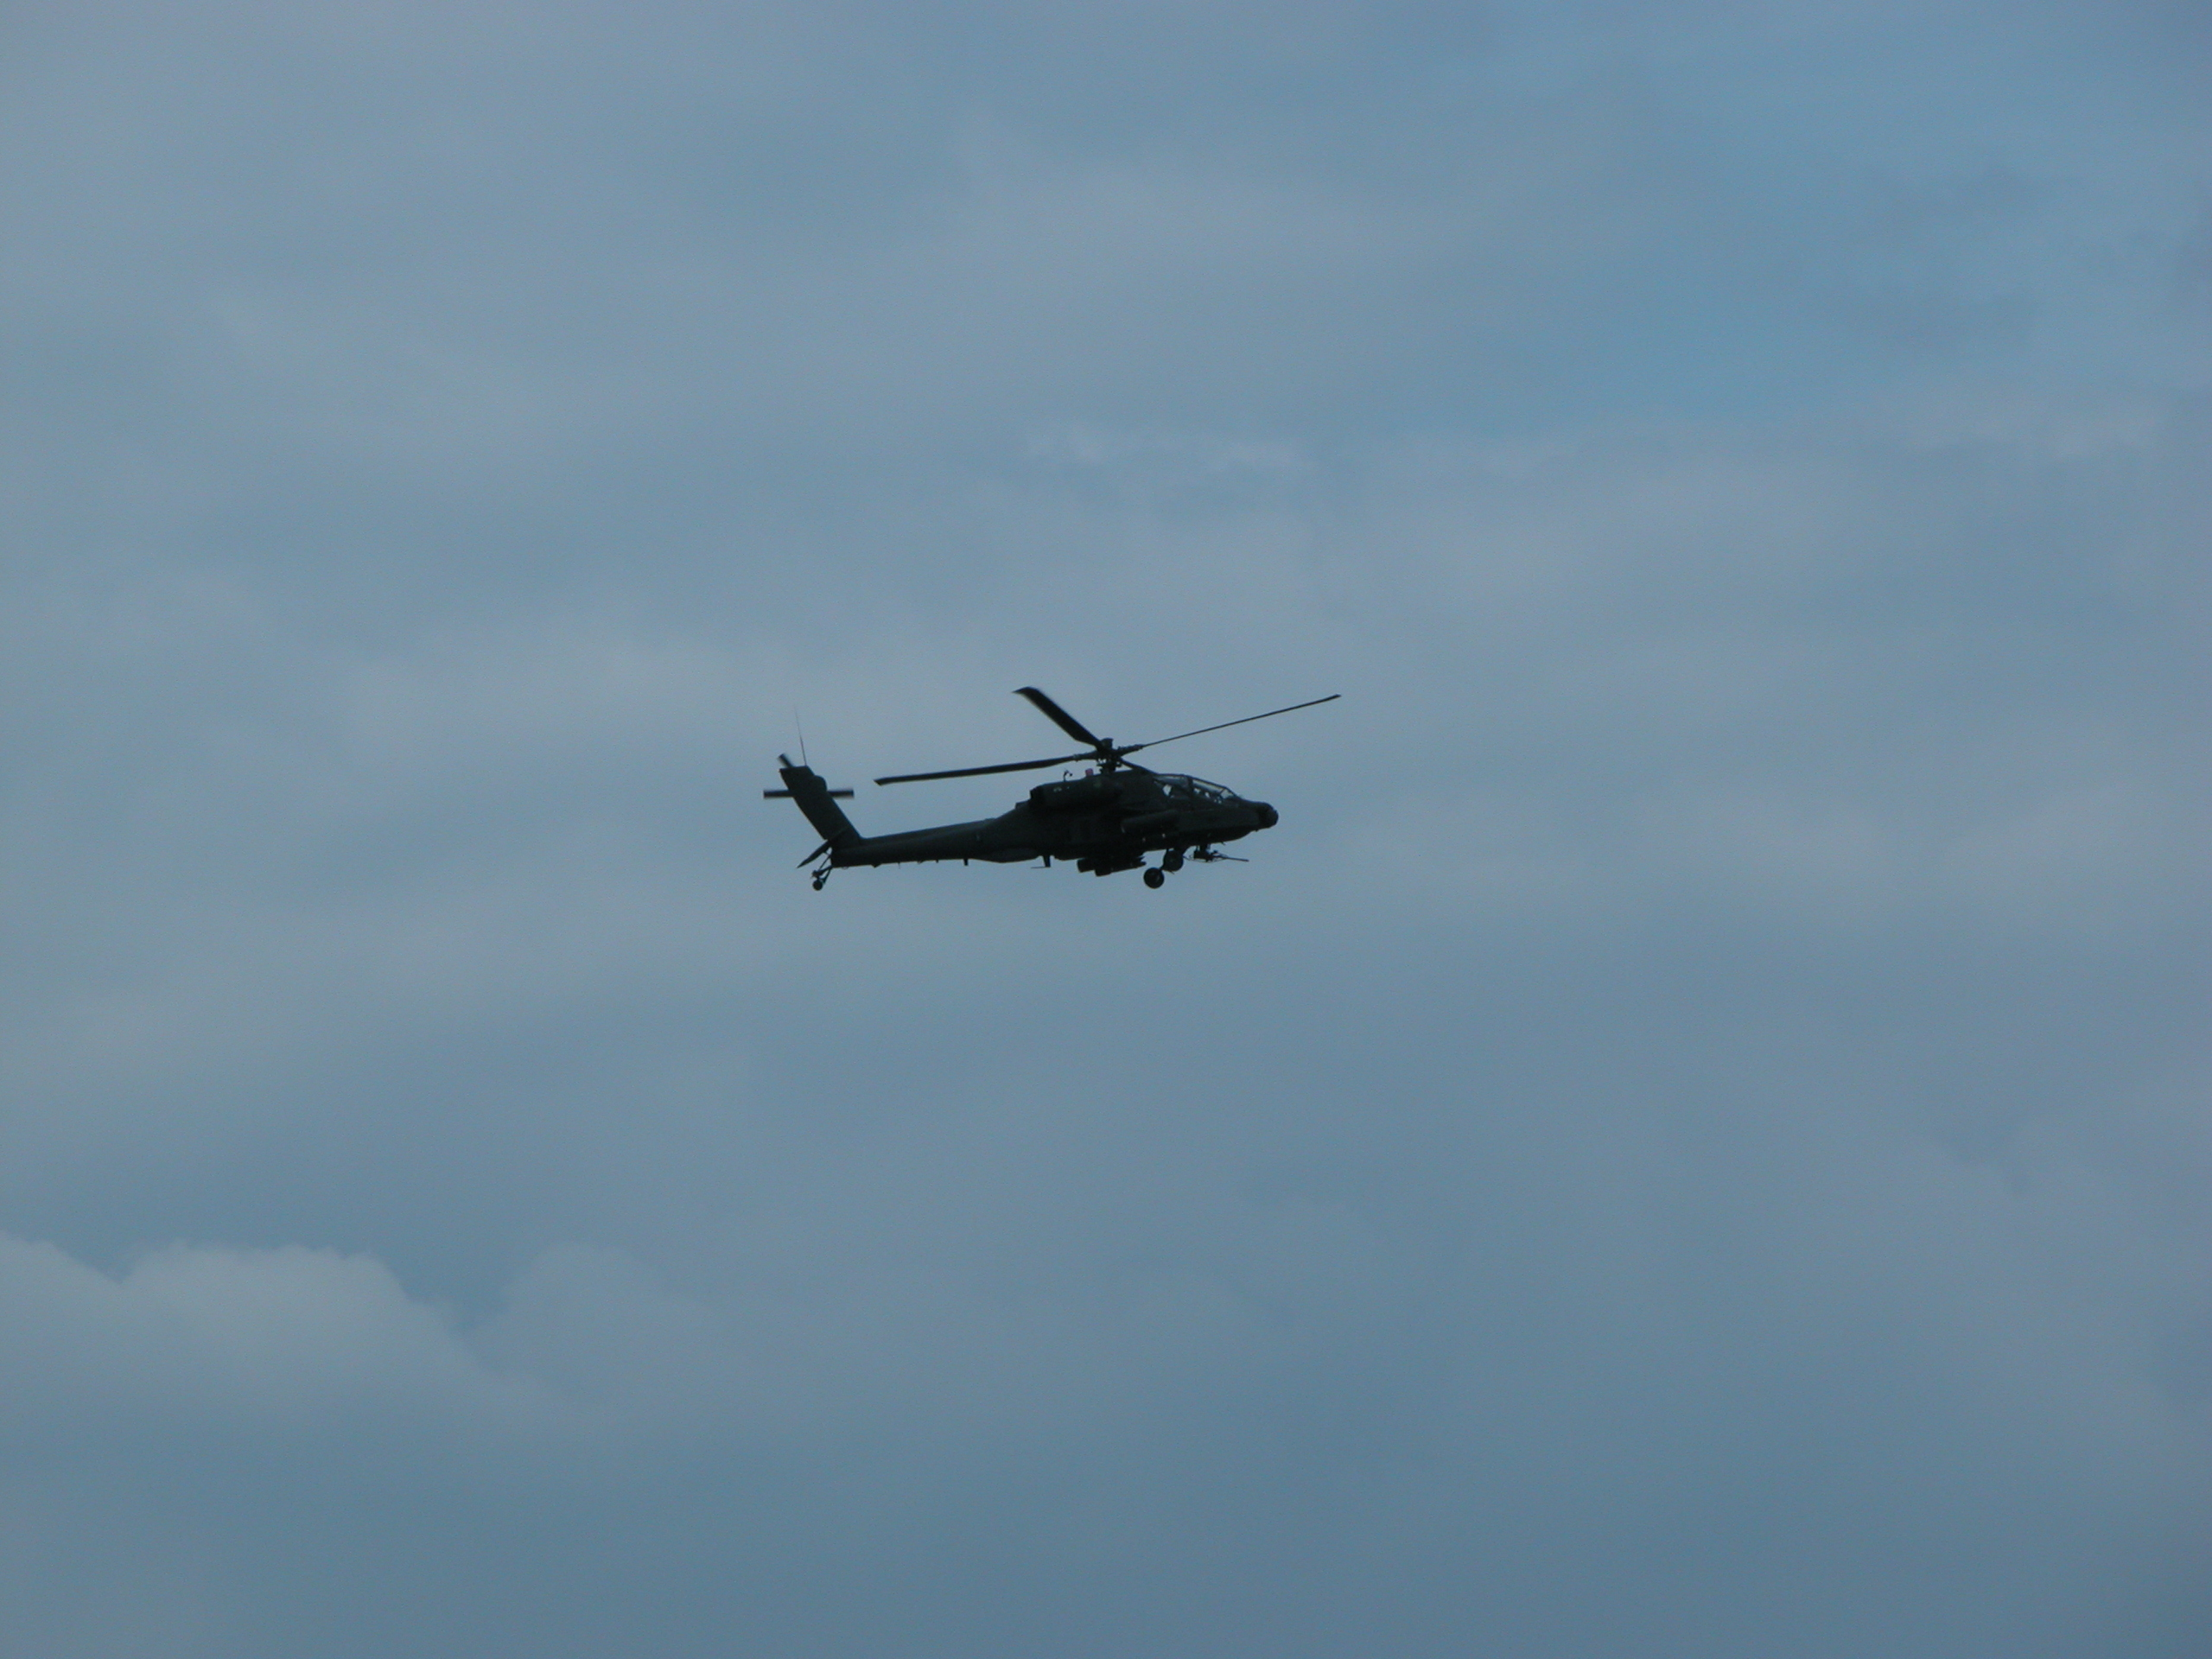 vehicles air apache ah64 flying airshow dutch helicopter chopper silhouette attack